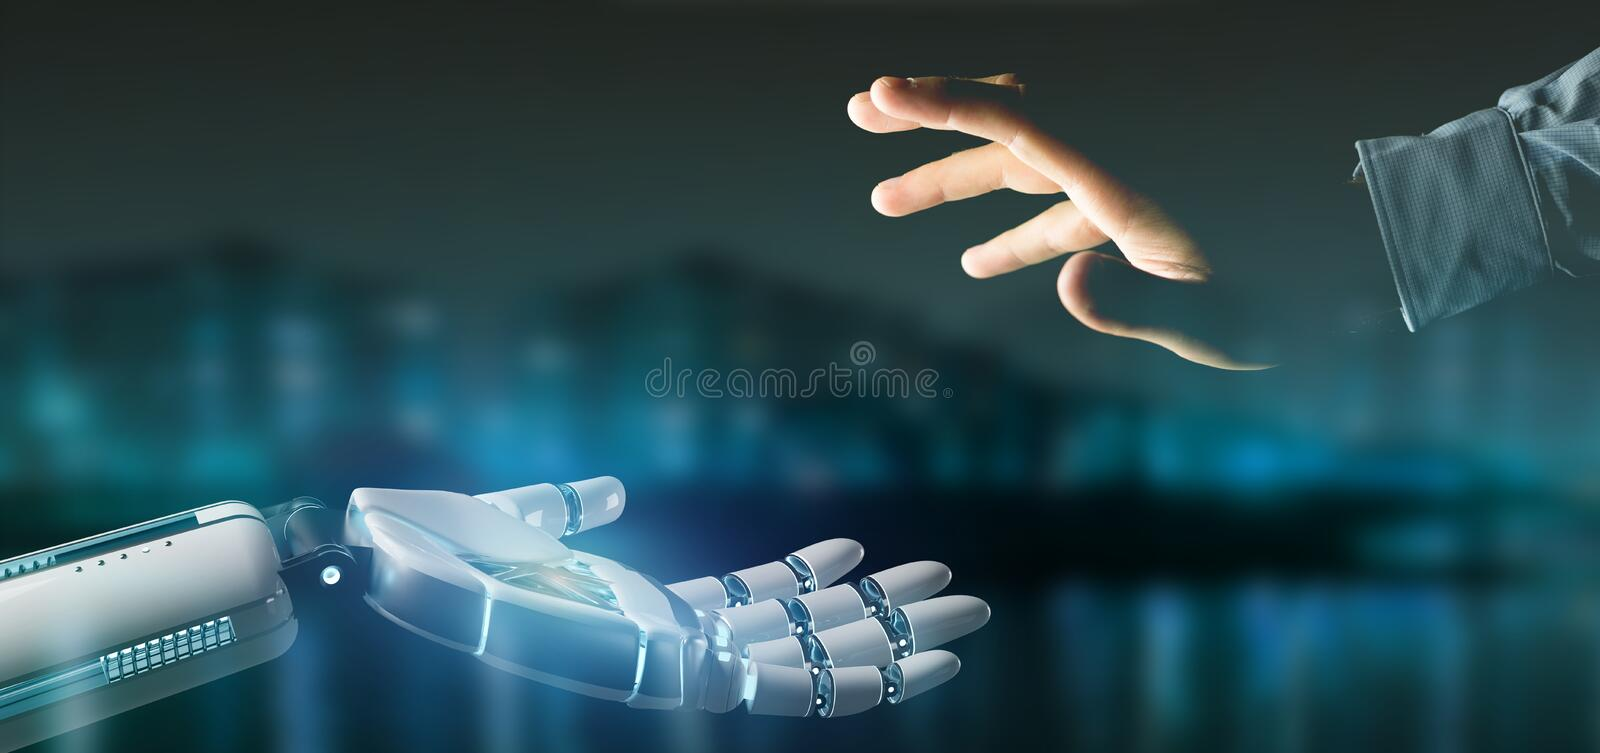 Cyborg robot hand on a city background 3d rendering stock images